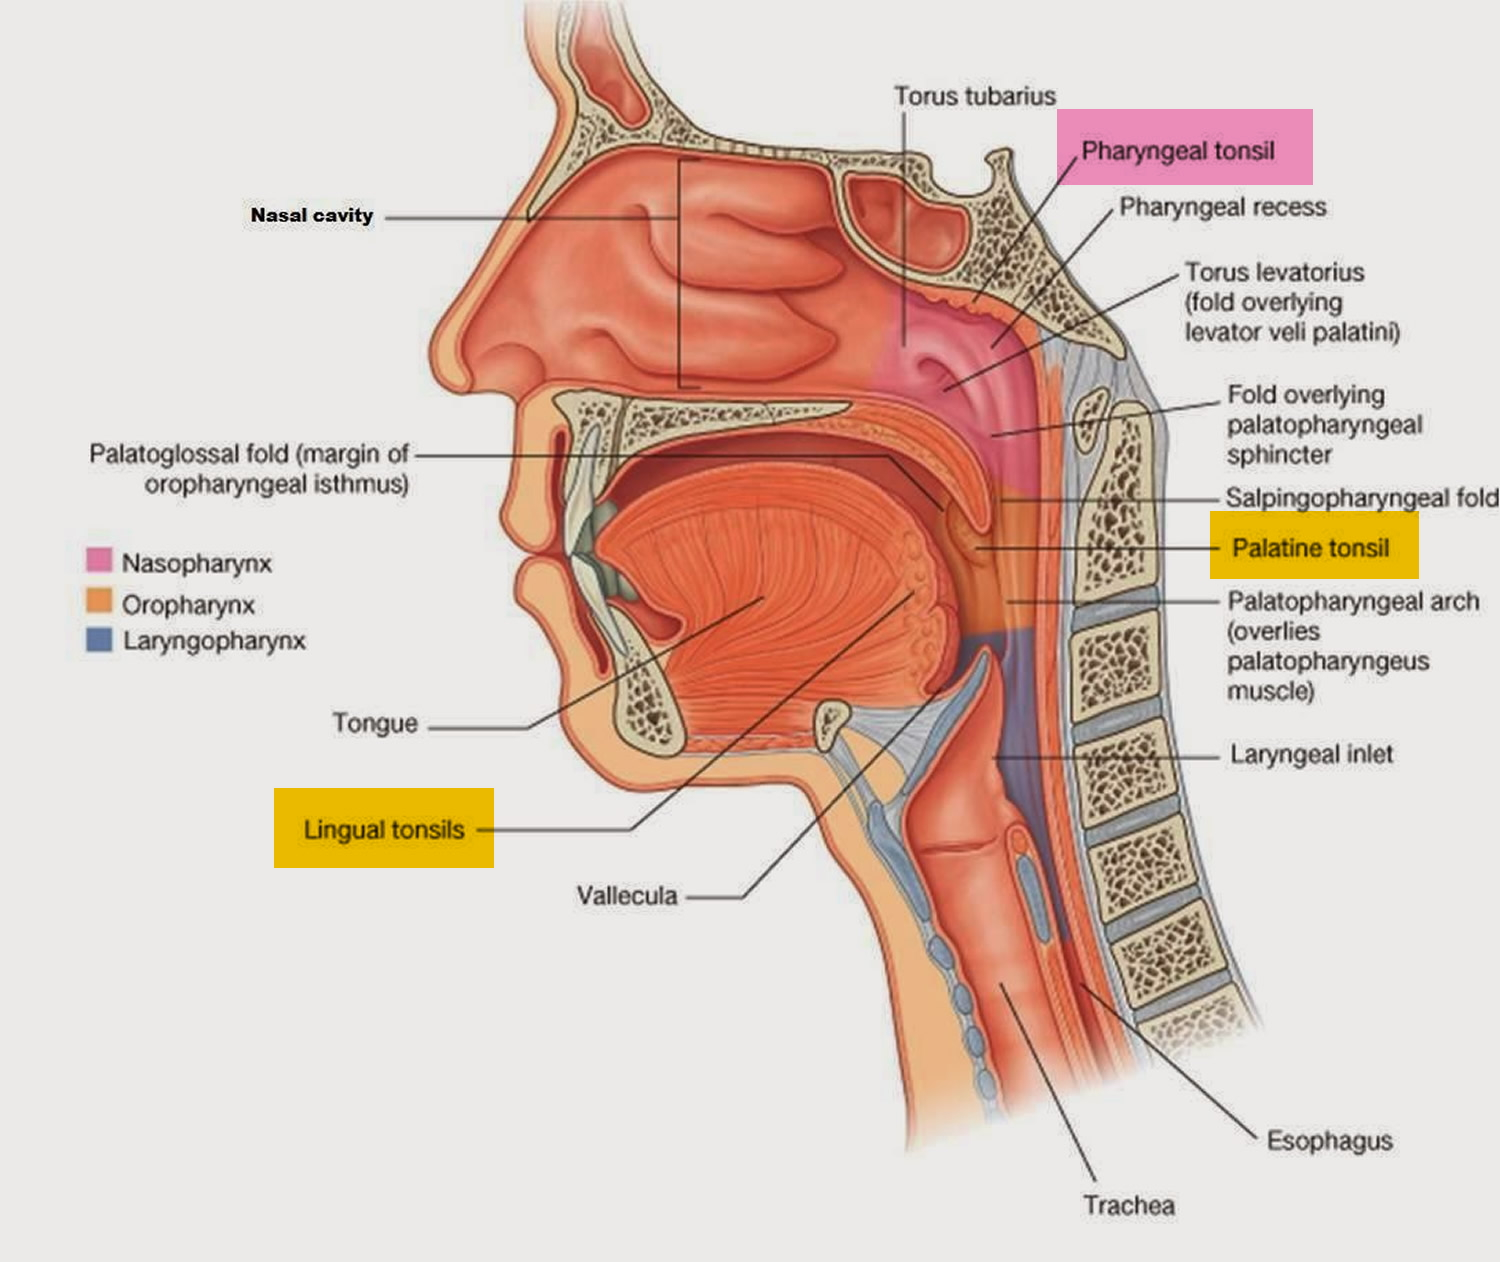 Tonsillitis and Adenoiditis - Causes, Diagnosis and Treatment